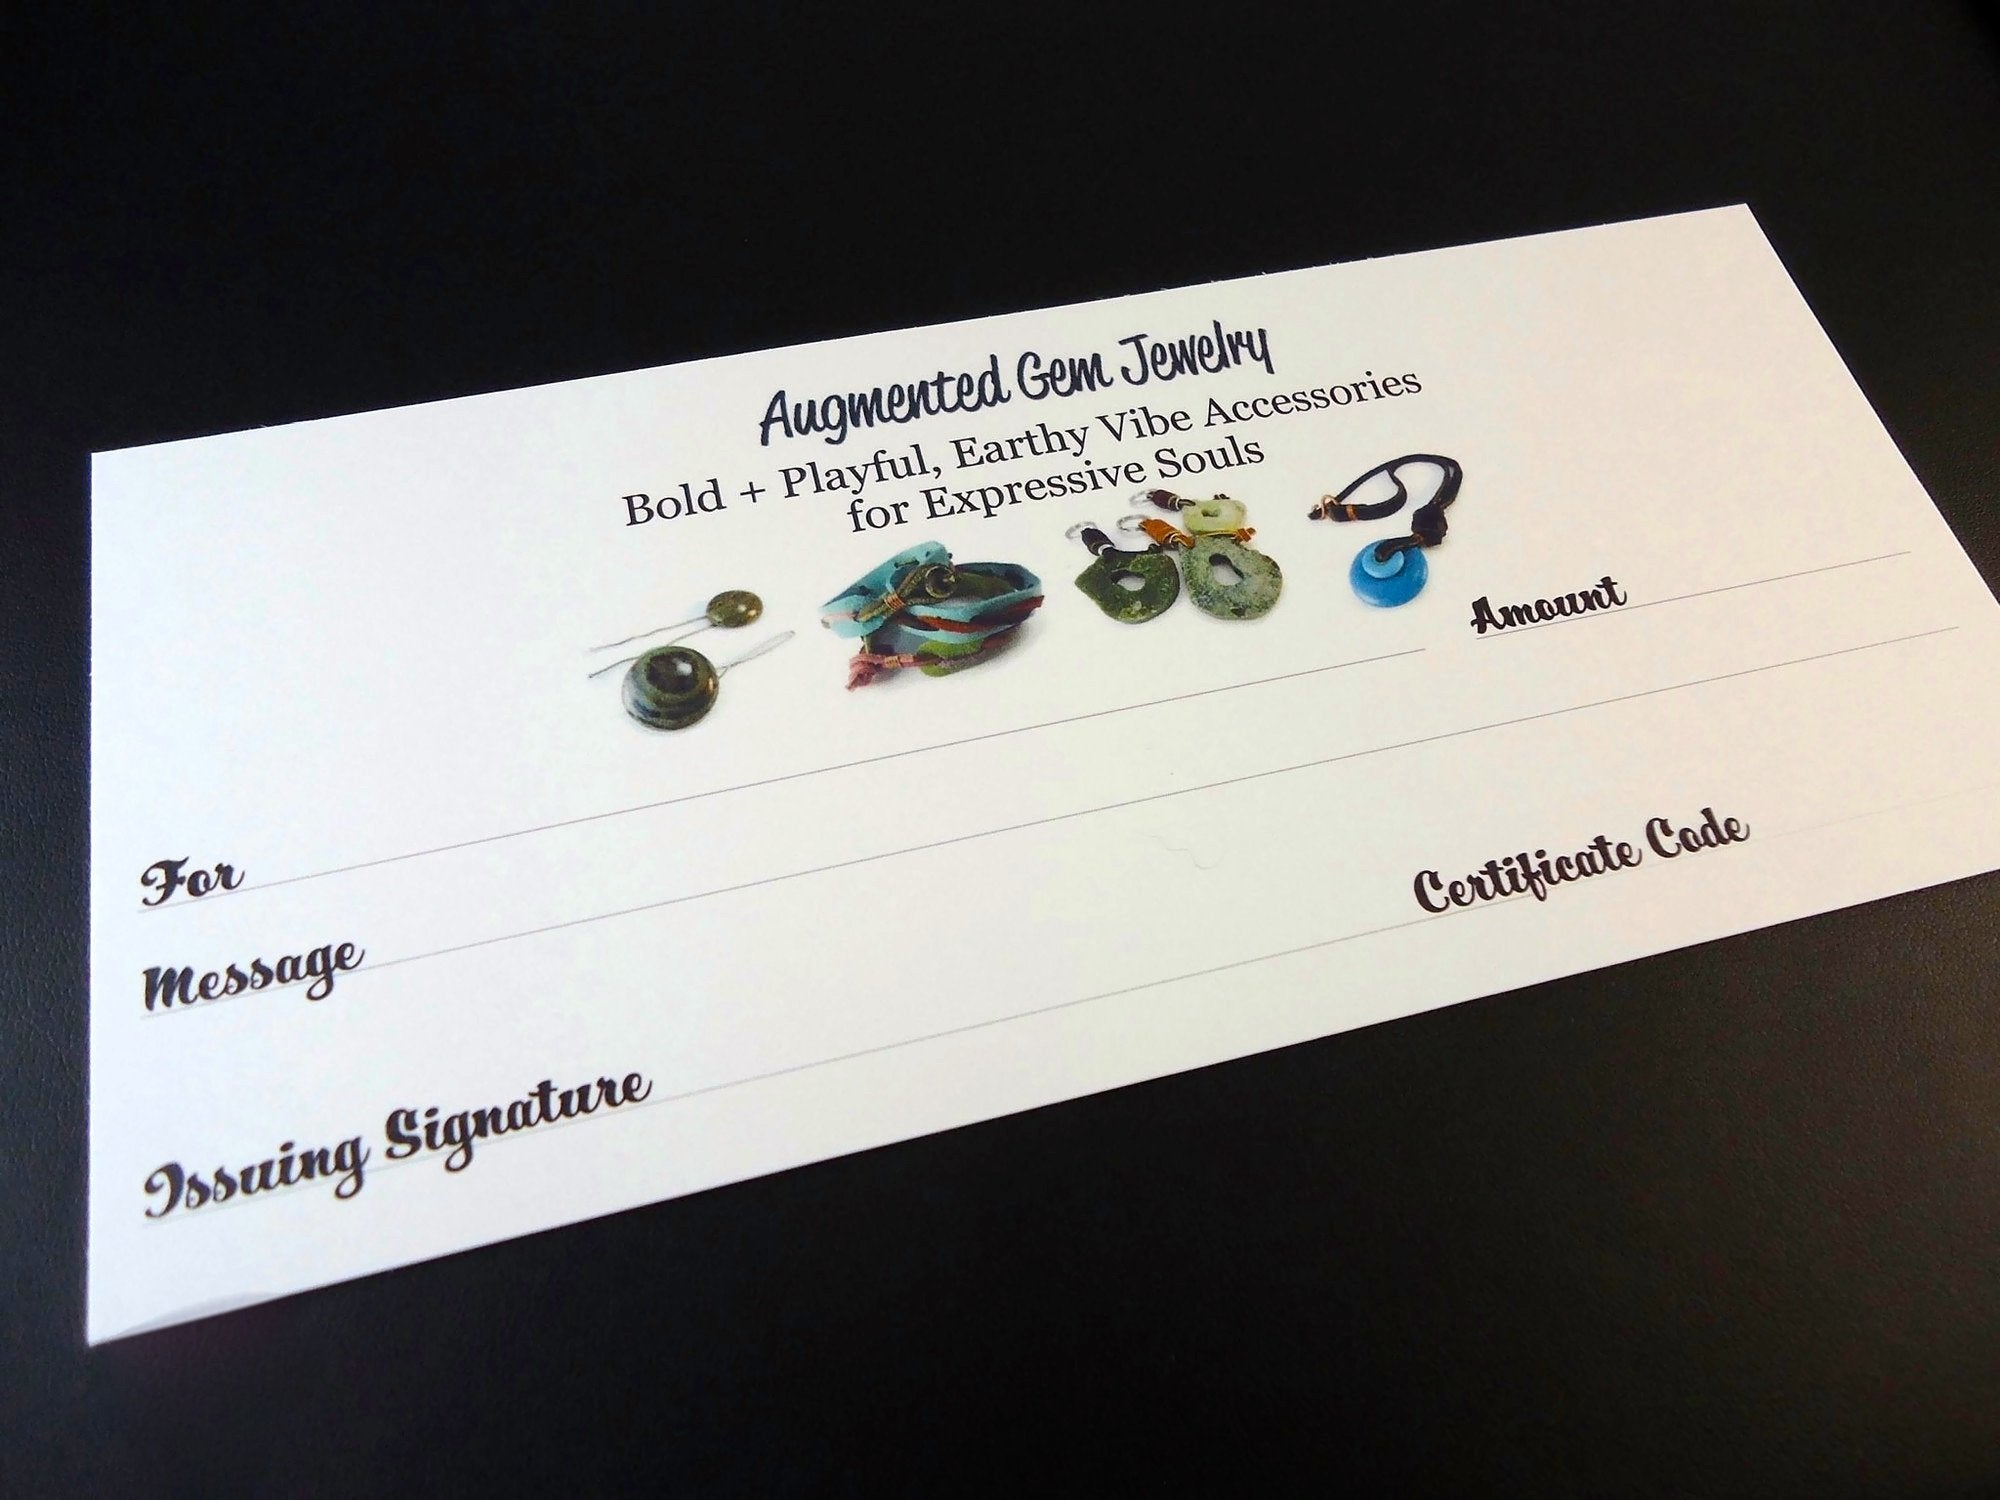 Electronic Gift Certificates - Augmented Gem Jewelry